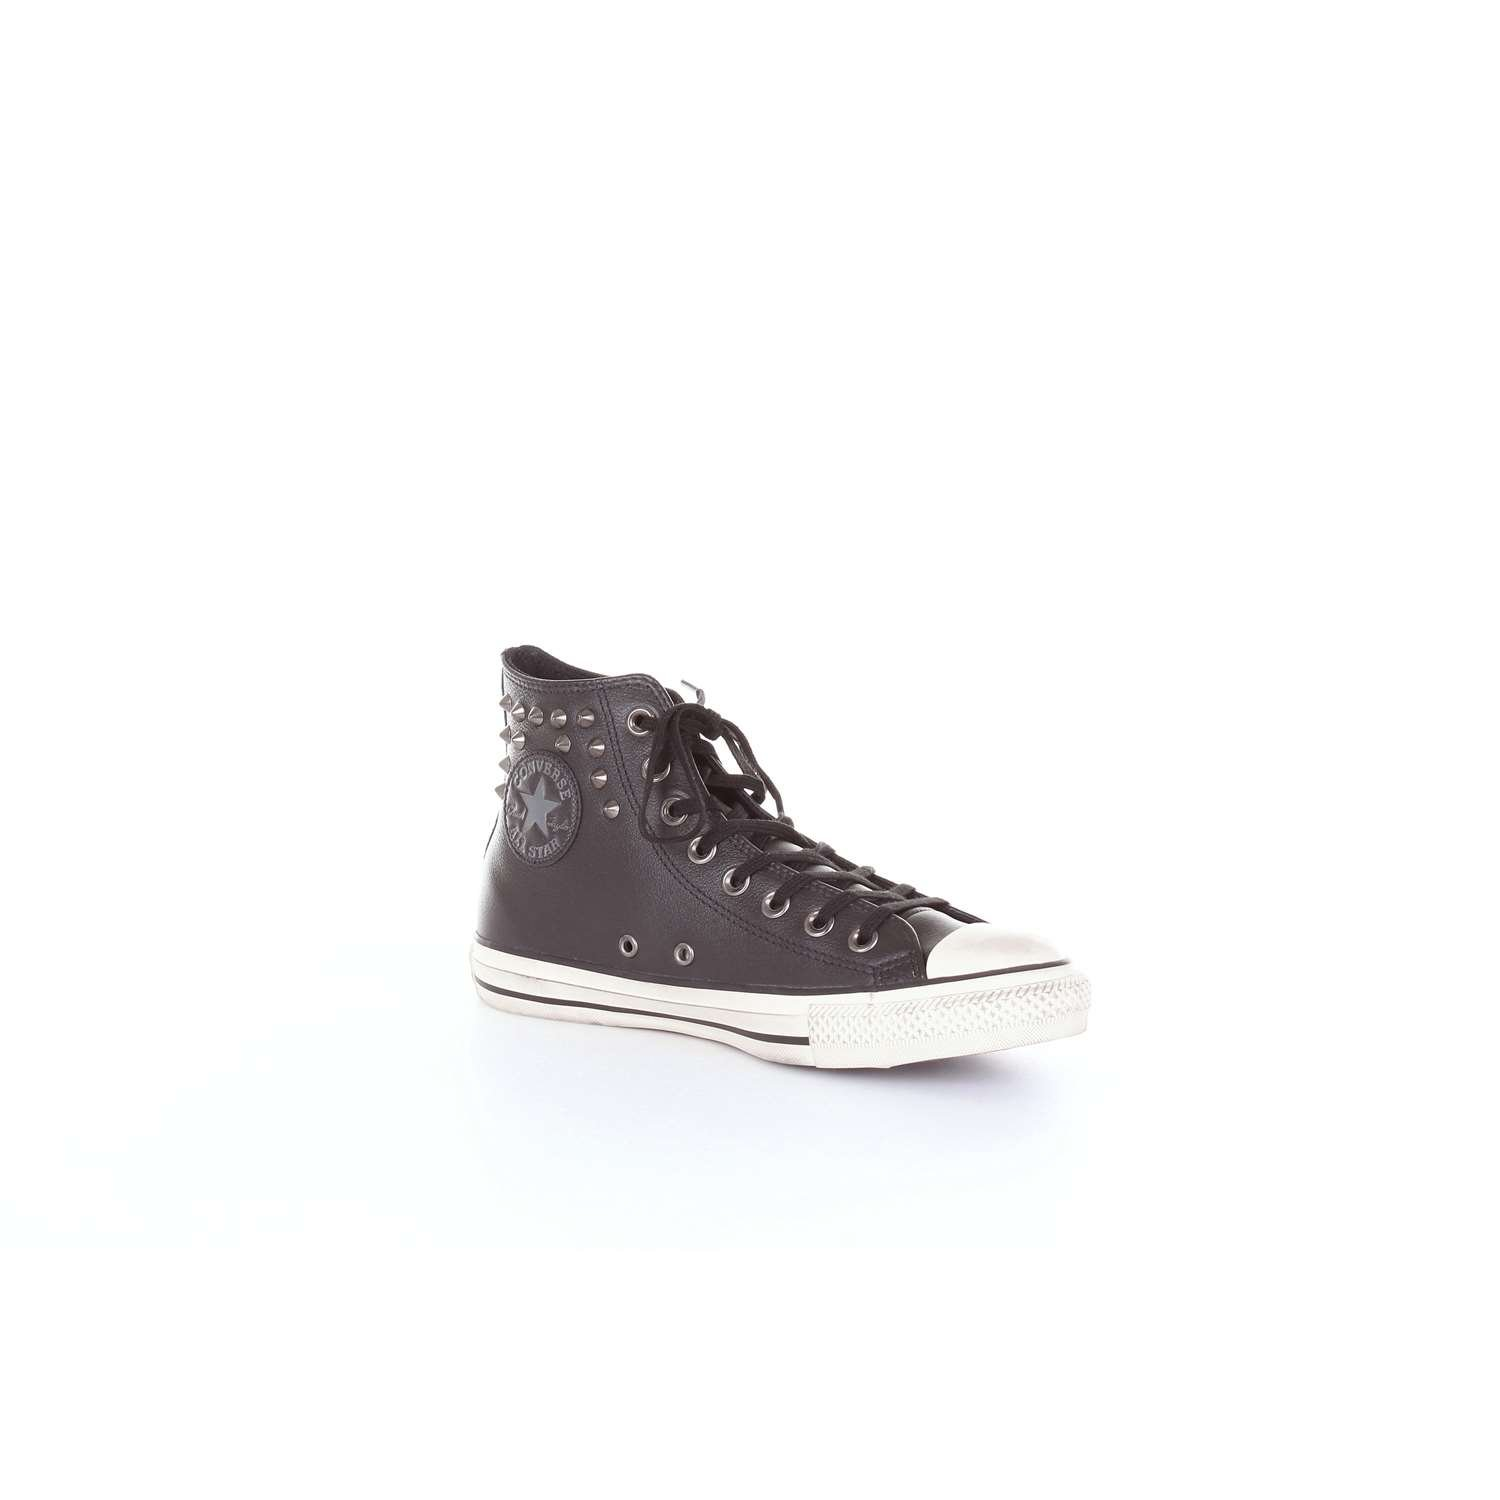 Scarpa Converse Chuck Taylor All Star borchie nera: Amazon.co.uk: Clothing